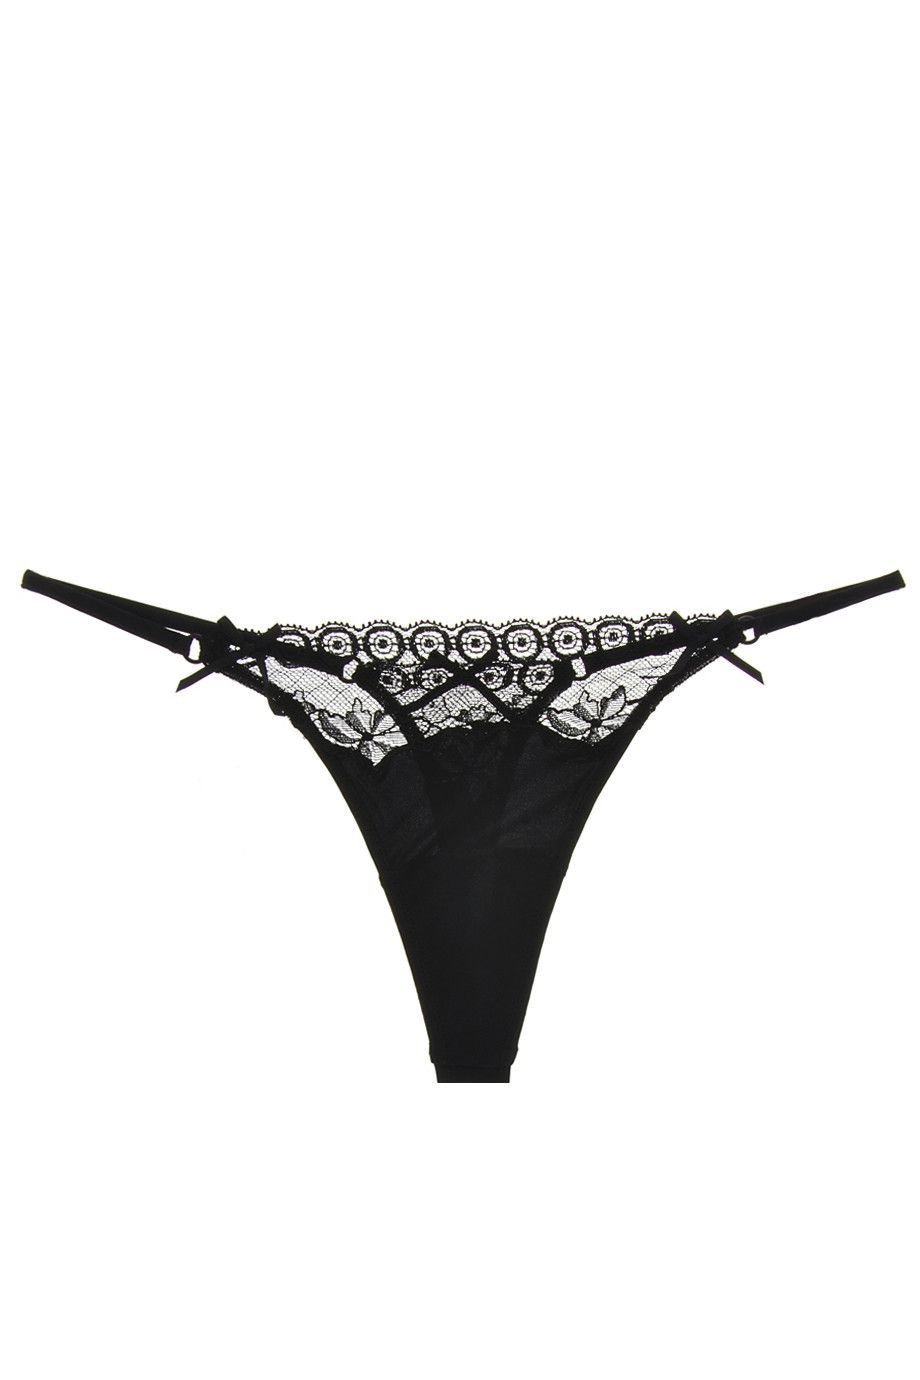 f247c0021bcaf COTTON CLUB VICTORIAN Lace Black Thong in 2019